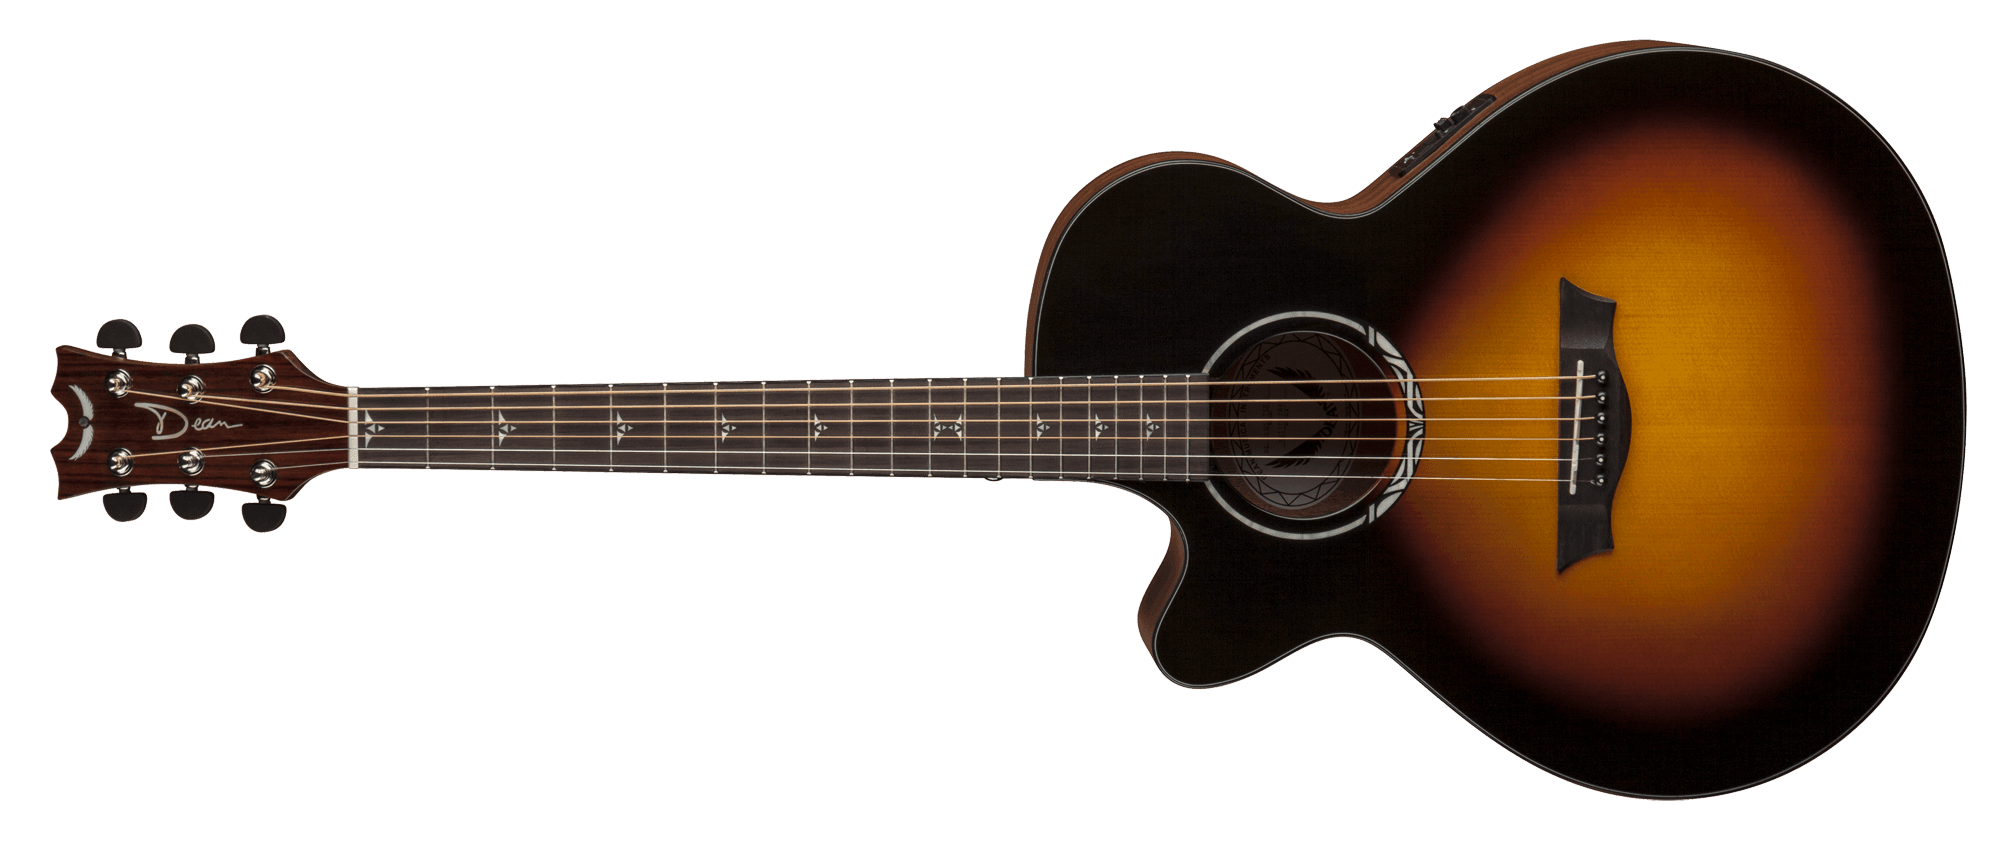 Beautifully Styled, Black And Brown Acoustic Guitar Photo 26775